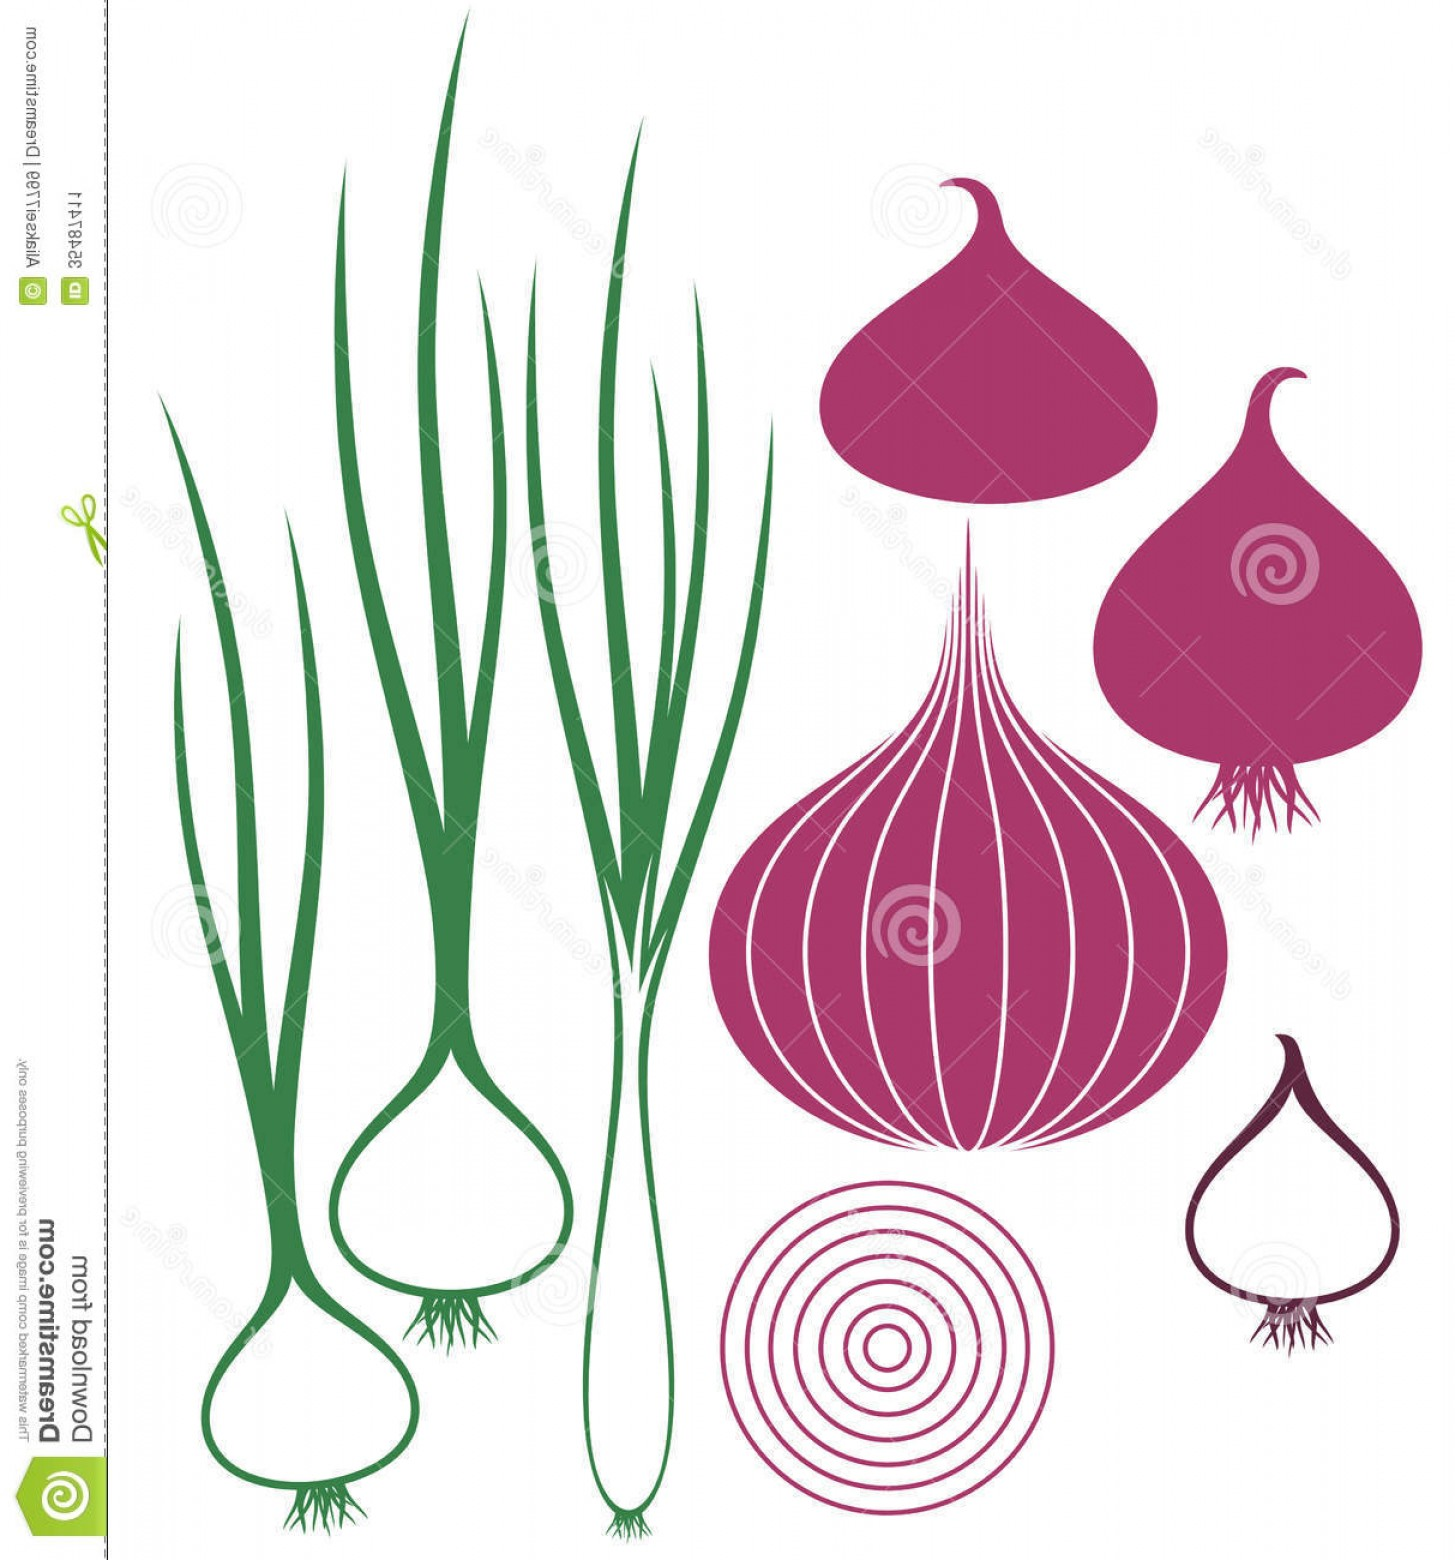 Onion Vector: Stock Image Onion Isolated Objects White Background Vector Illustration Eps Image